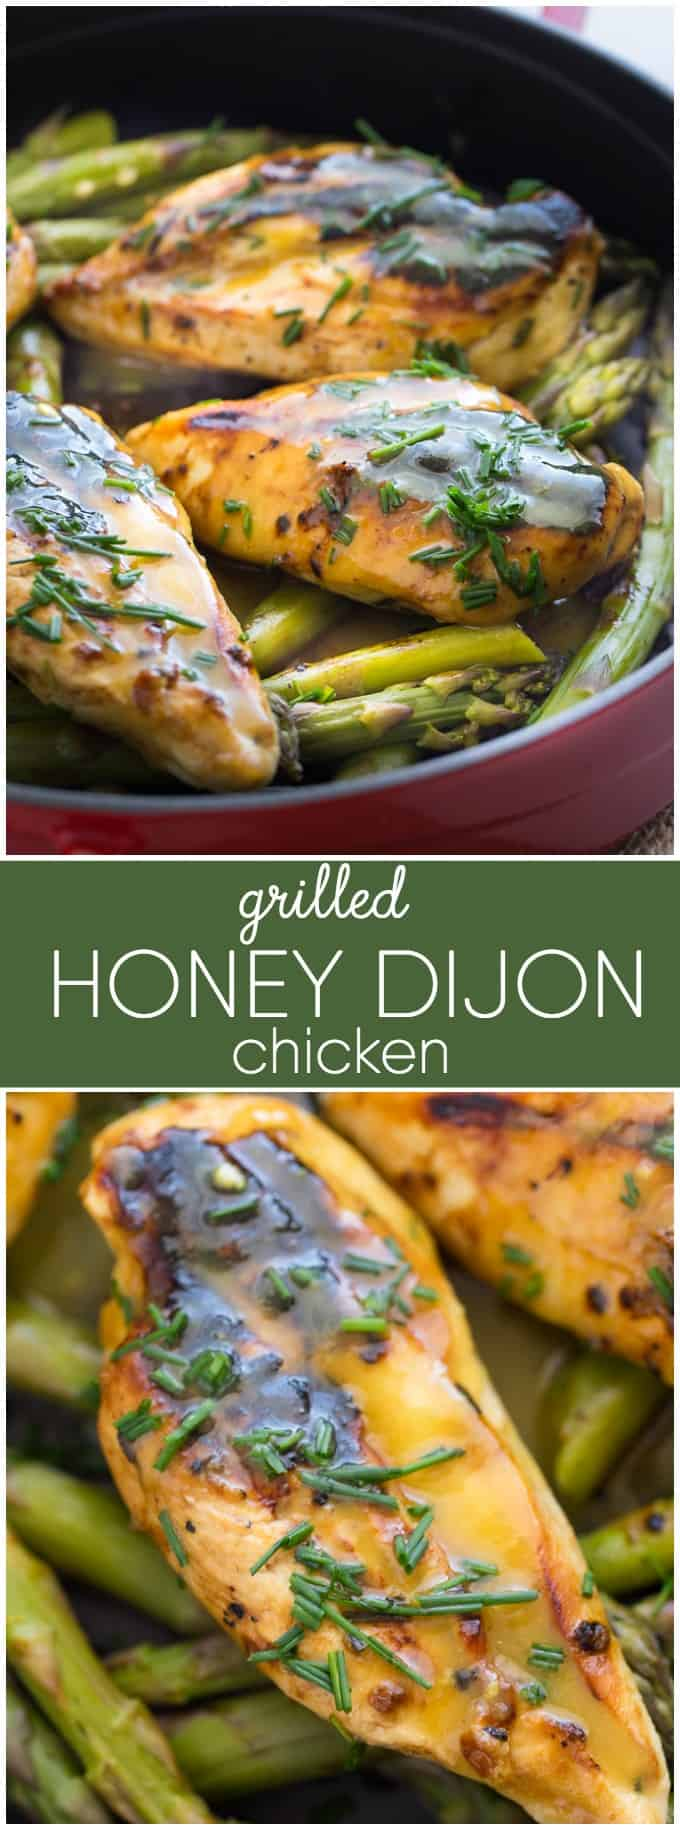 Grilled Honey Dijon Chicken - Slather this perfectly grilled protein in your favorite homemade salad dressing. It's tangy and sweet to lighten up your next barbecue.